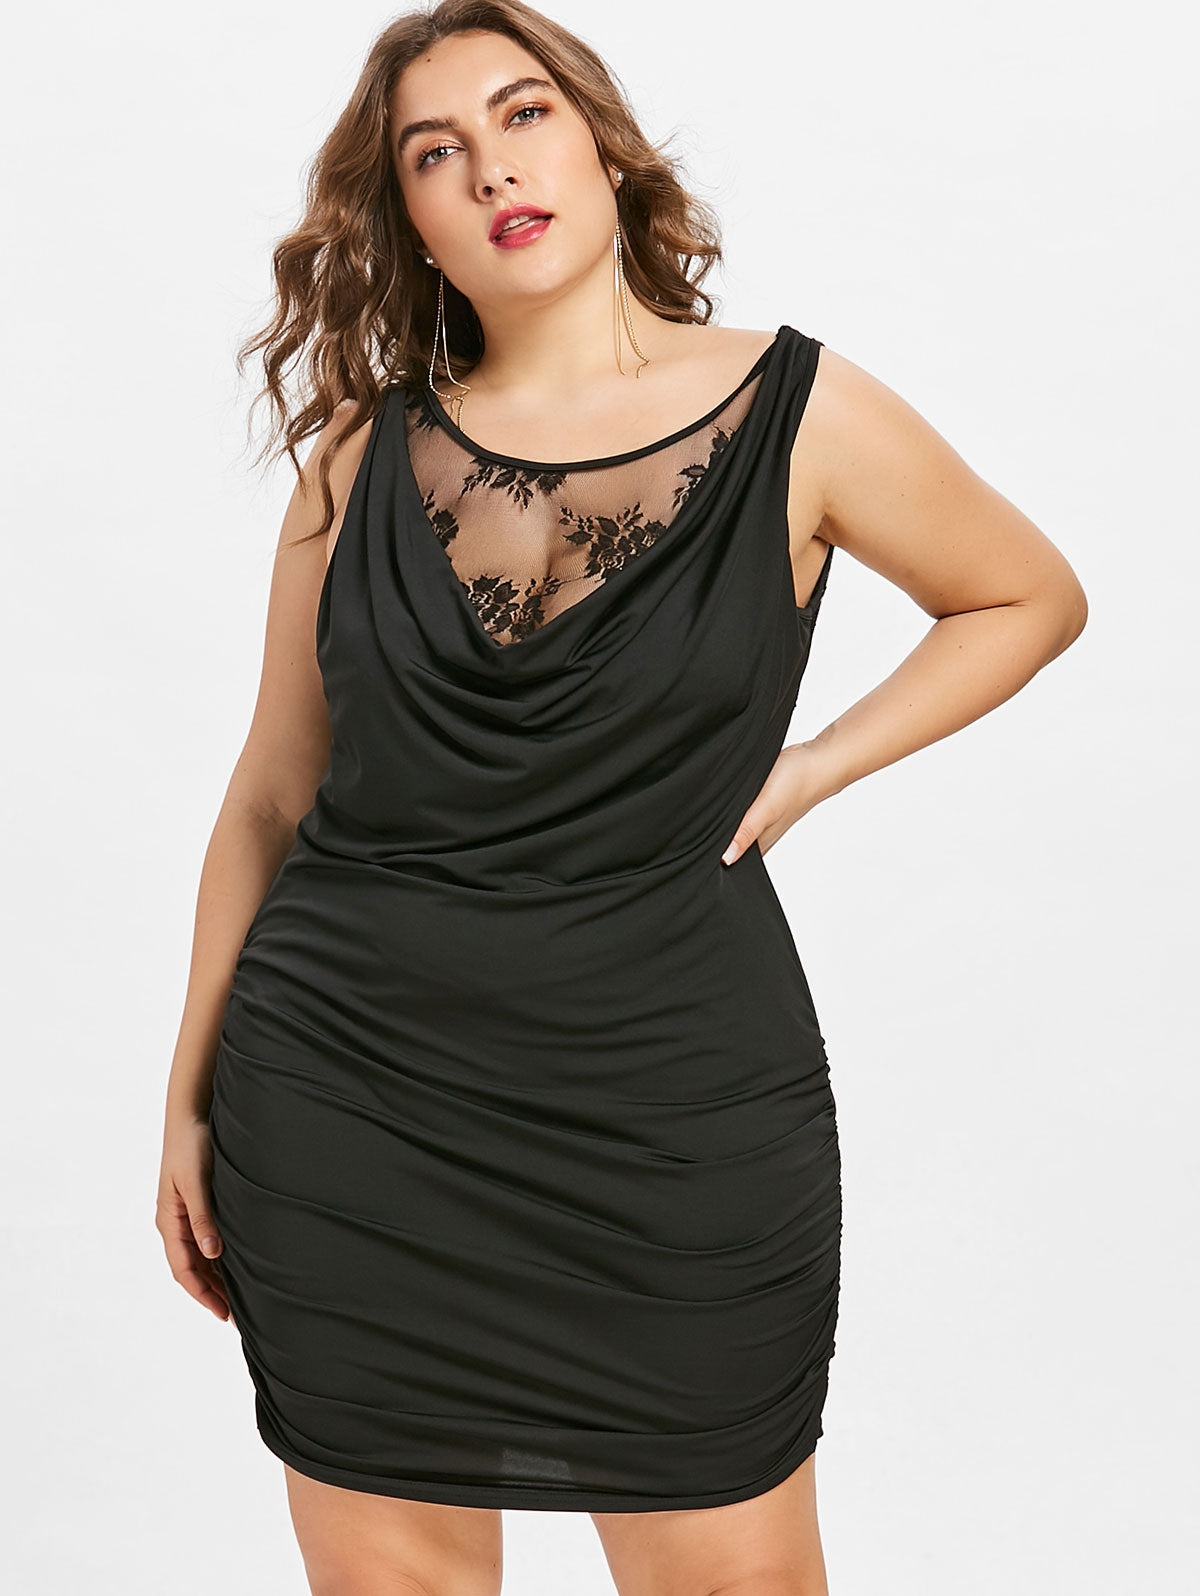 Women'S Lace Panel Draped Dress-Dresses-Product Details: Women's Lace Panel Draped Plus Size Dress Style: Club Material: Polyester Silhouette: Bodycon Dresses Length: Mini Neckline: Scoop Neck Sleeve Length: Sleeveless Embellishment: Lace, Ruched Pattern Type: Solid Color Elasticity: Elastic With Belt: No Season: Spring, Summer Weight: 0.234 kg Package Contents: 1 x Dress Size Chart:-Keyomi-Sook